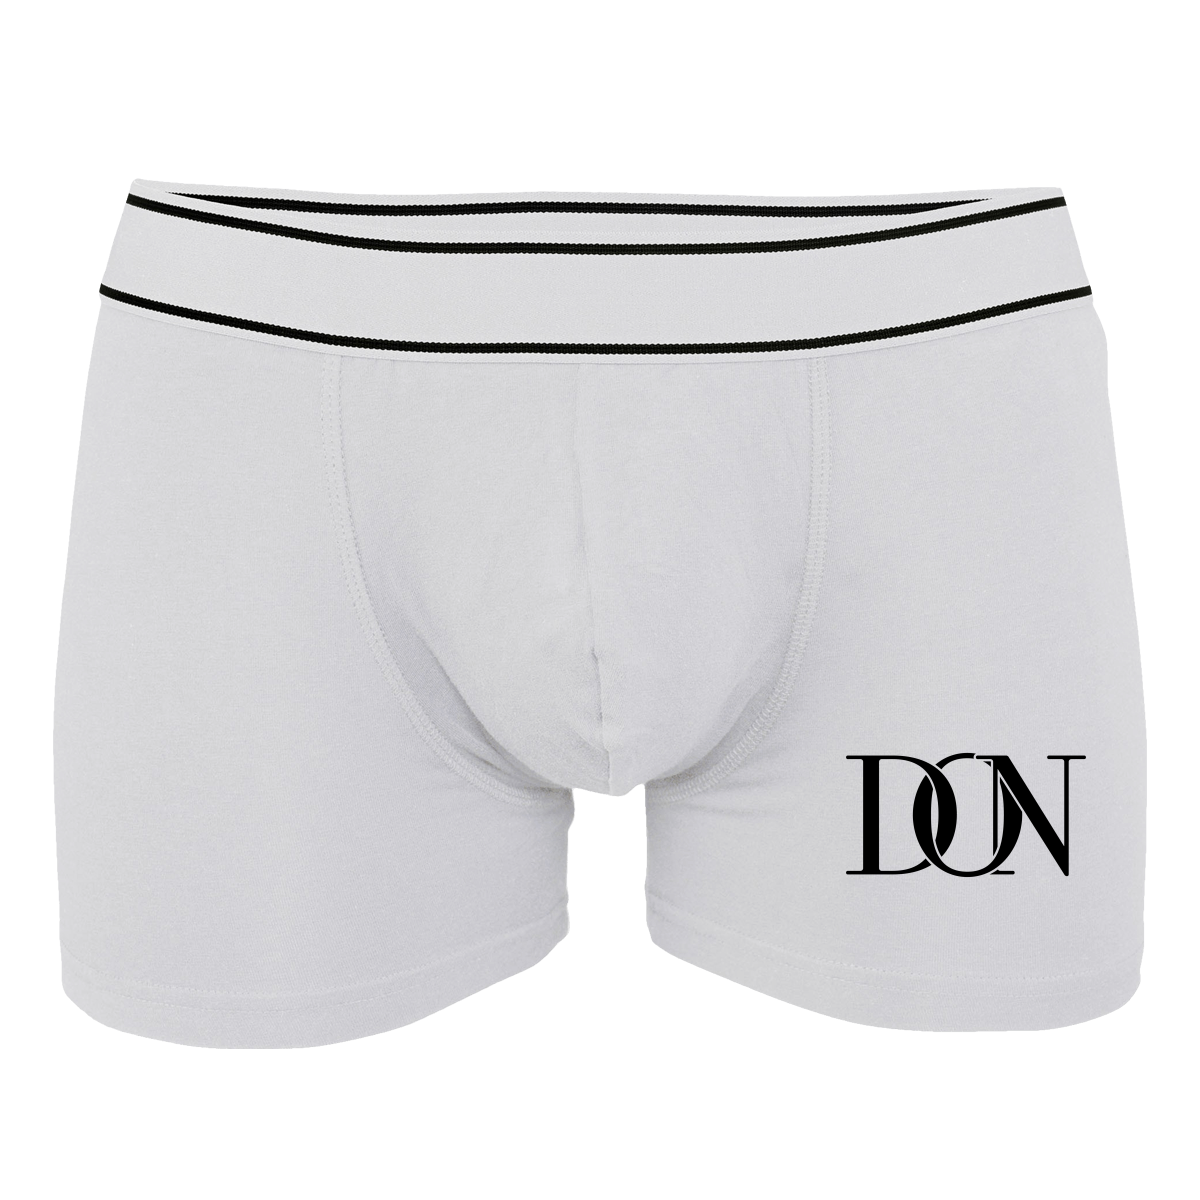 Mens Official Don Signature Plain Boxer-Shorts - White / S - Homme>Sous-Vêtements